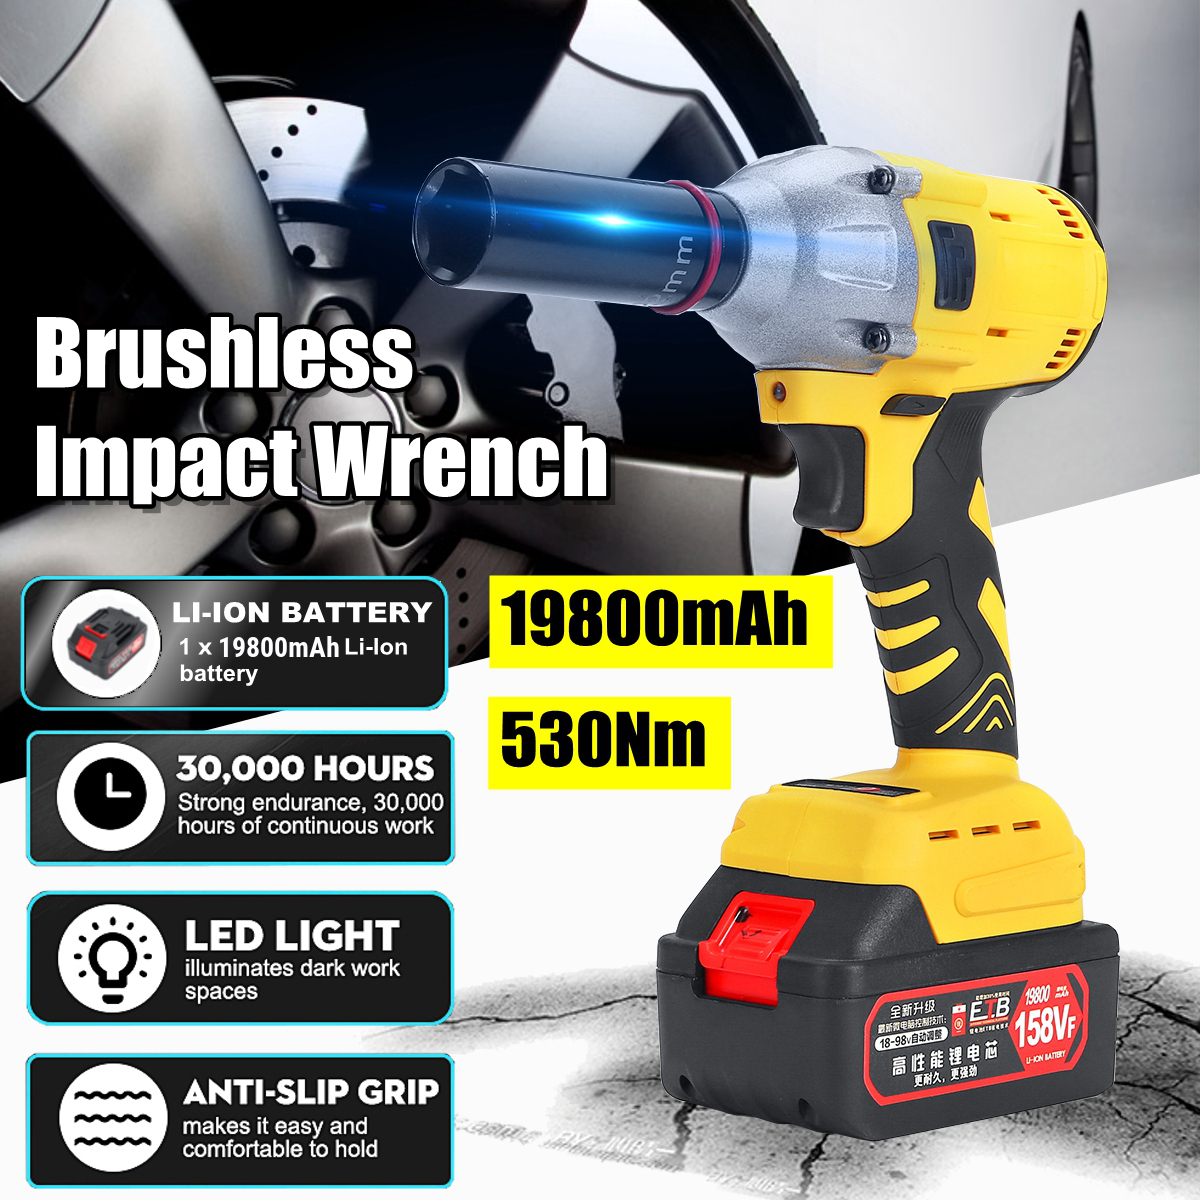 158VF 530Nm 19800mah 1/2'' Cordless Impact Wrench Screwdriver Power Driver Electric Wrench Socket Kit W/1 Or 2 Battery